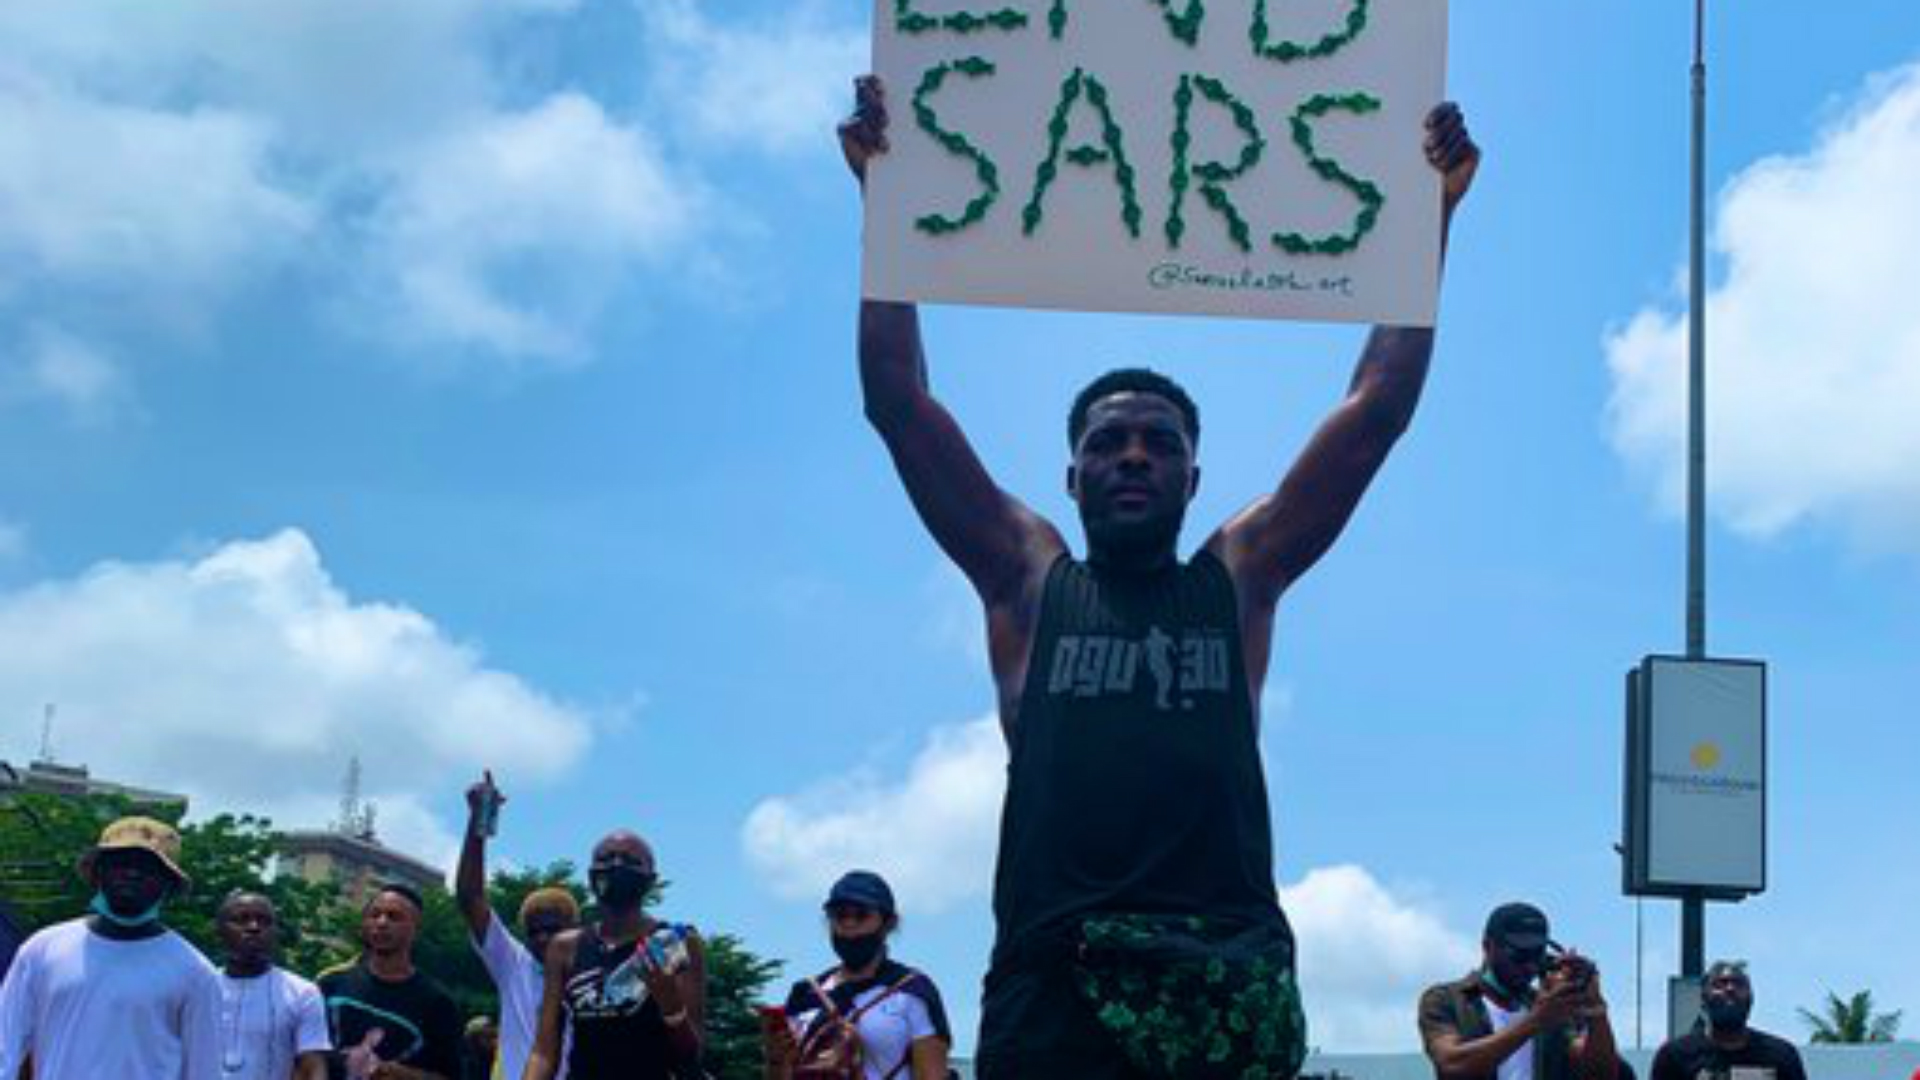 End SARS protest: Ogu calls on Nigeria players to boycott games to 'make a statement'